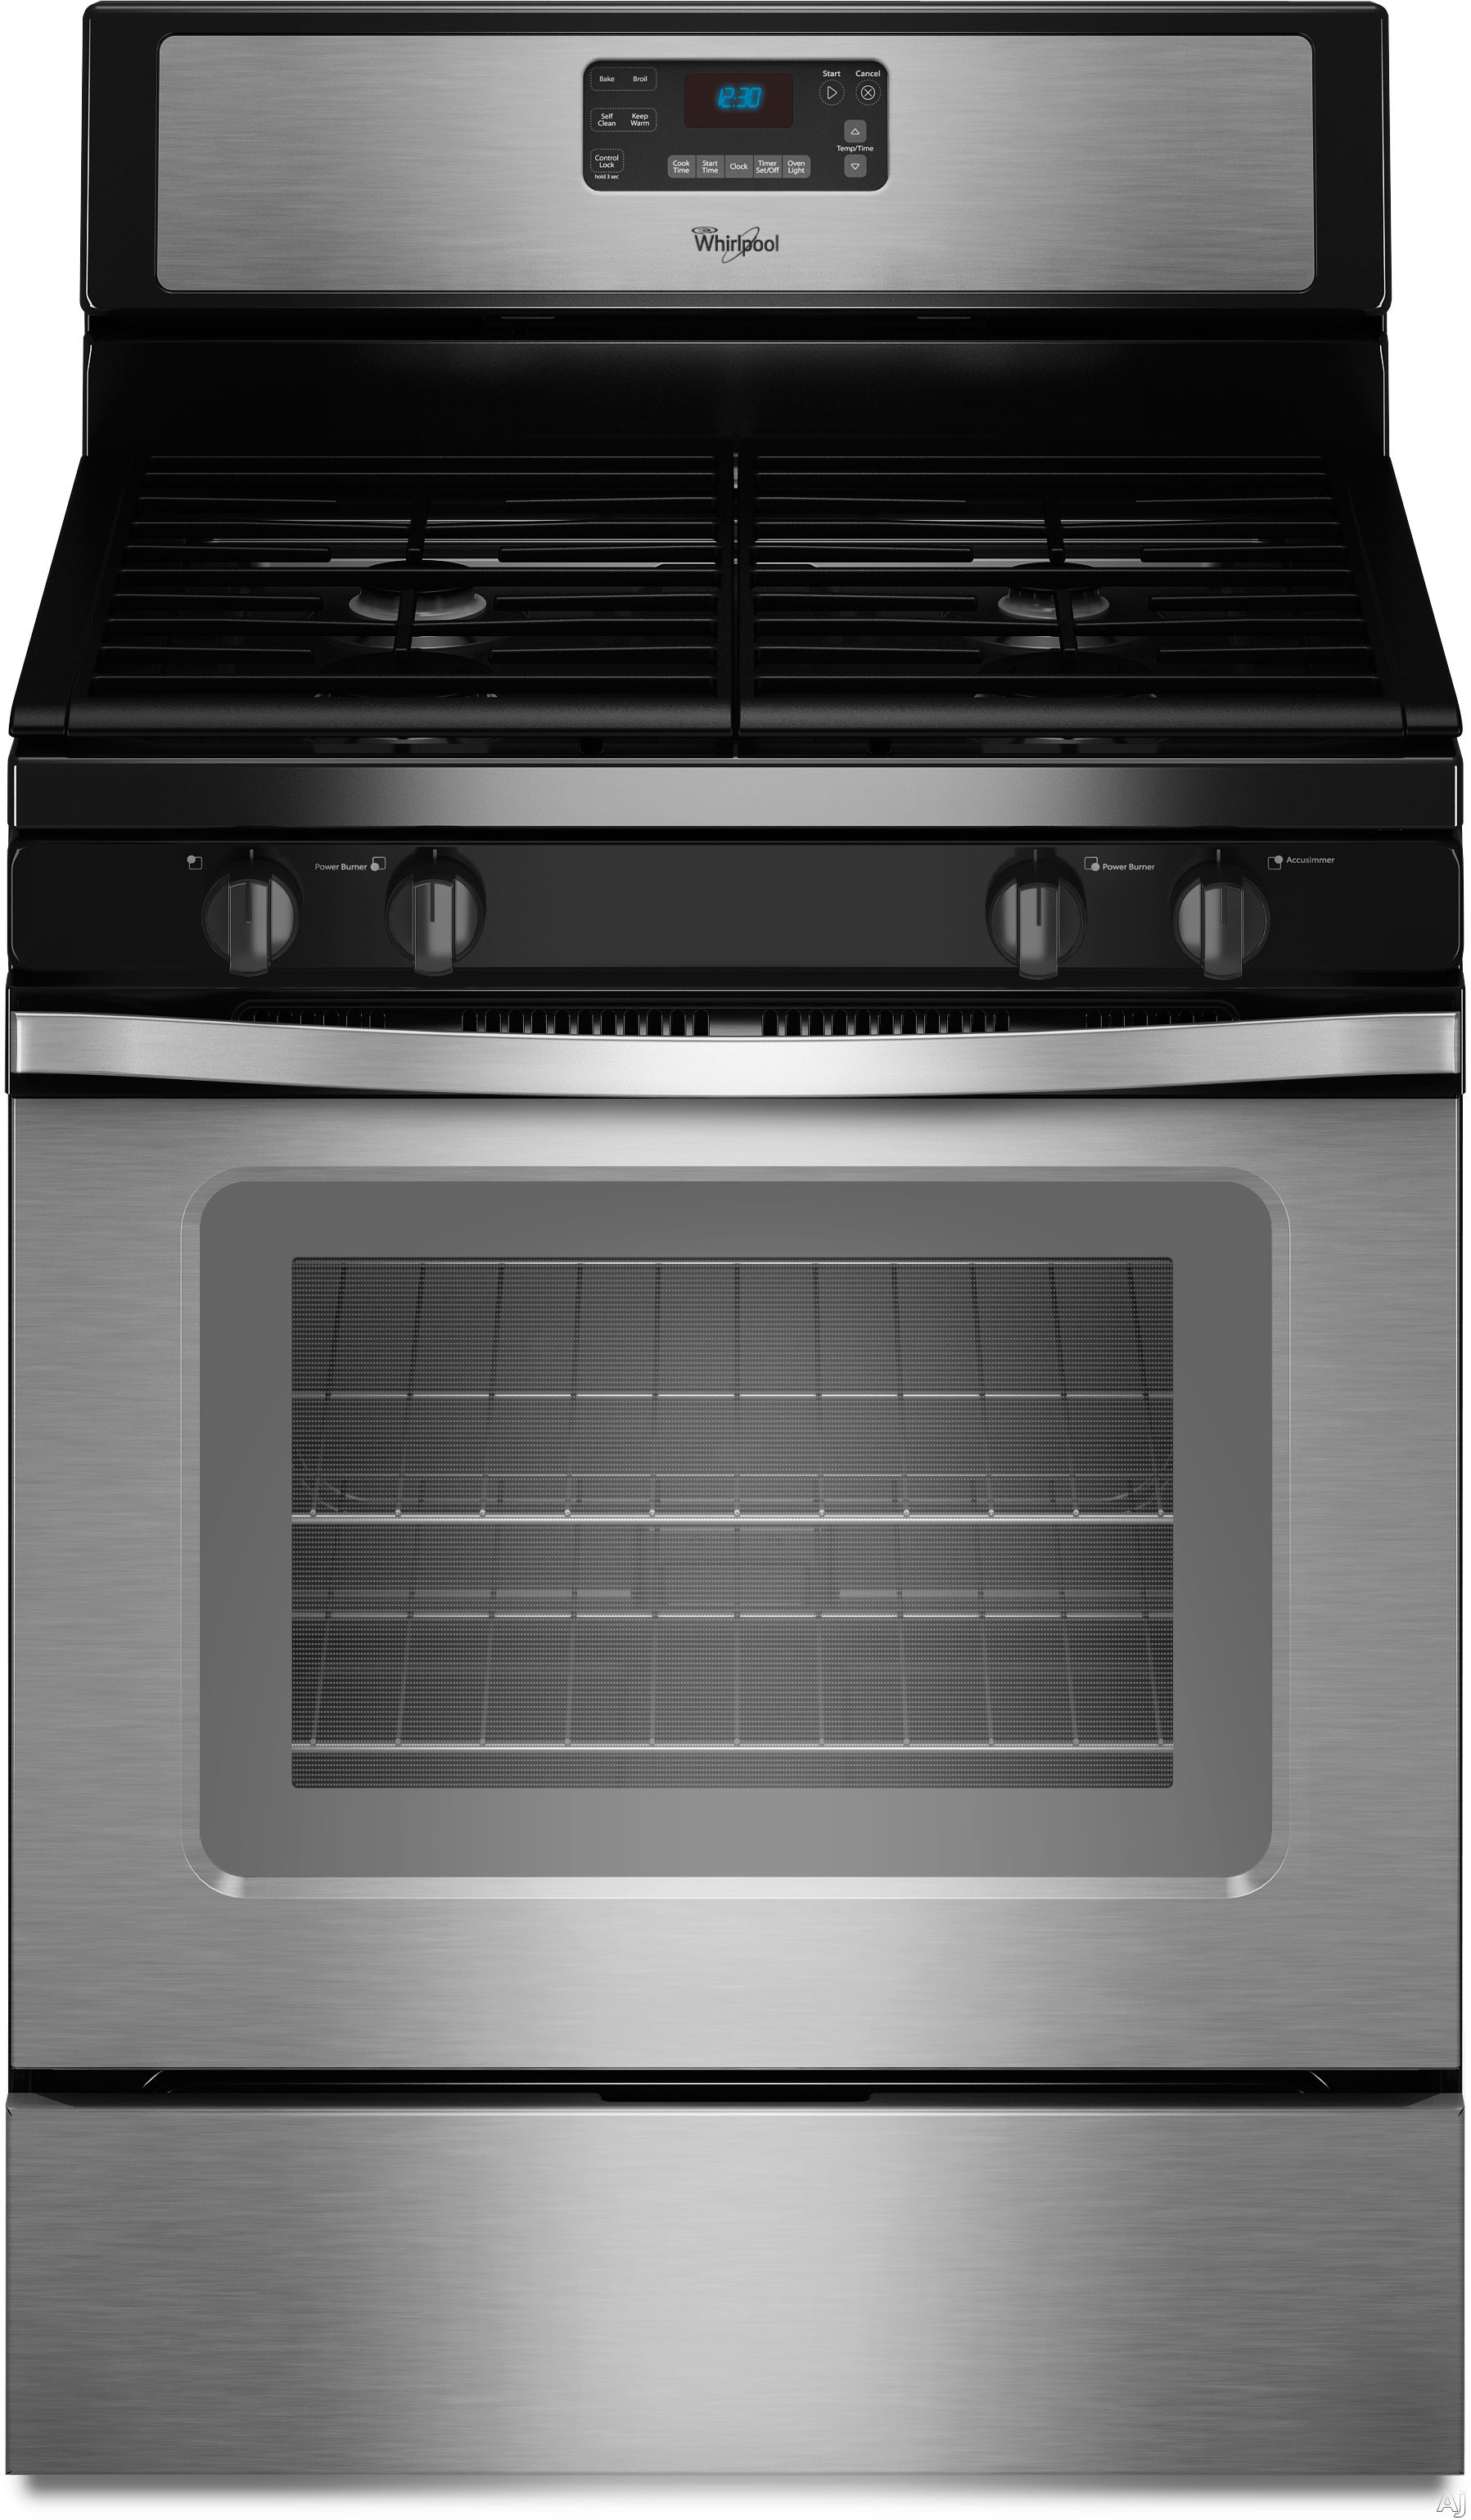 whirlpool wfg520s0as 30 freestanding gas range with 4 sealed burners 5 0 cu ft self cleaning. Black Bedroom Furniture Sets. Home Design Ideas